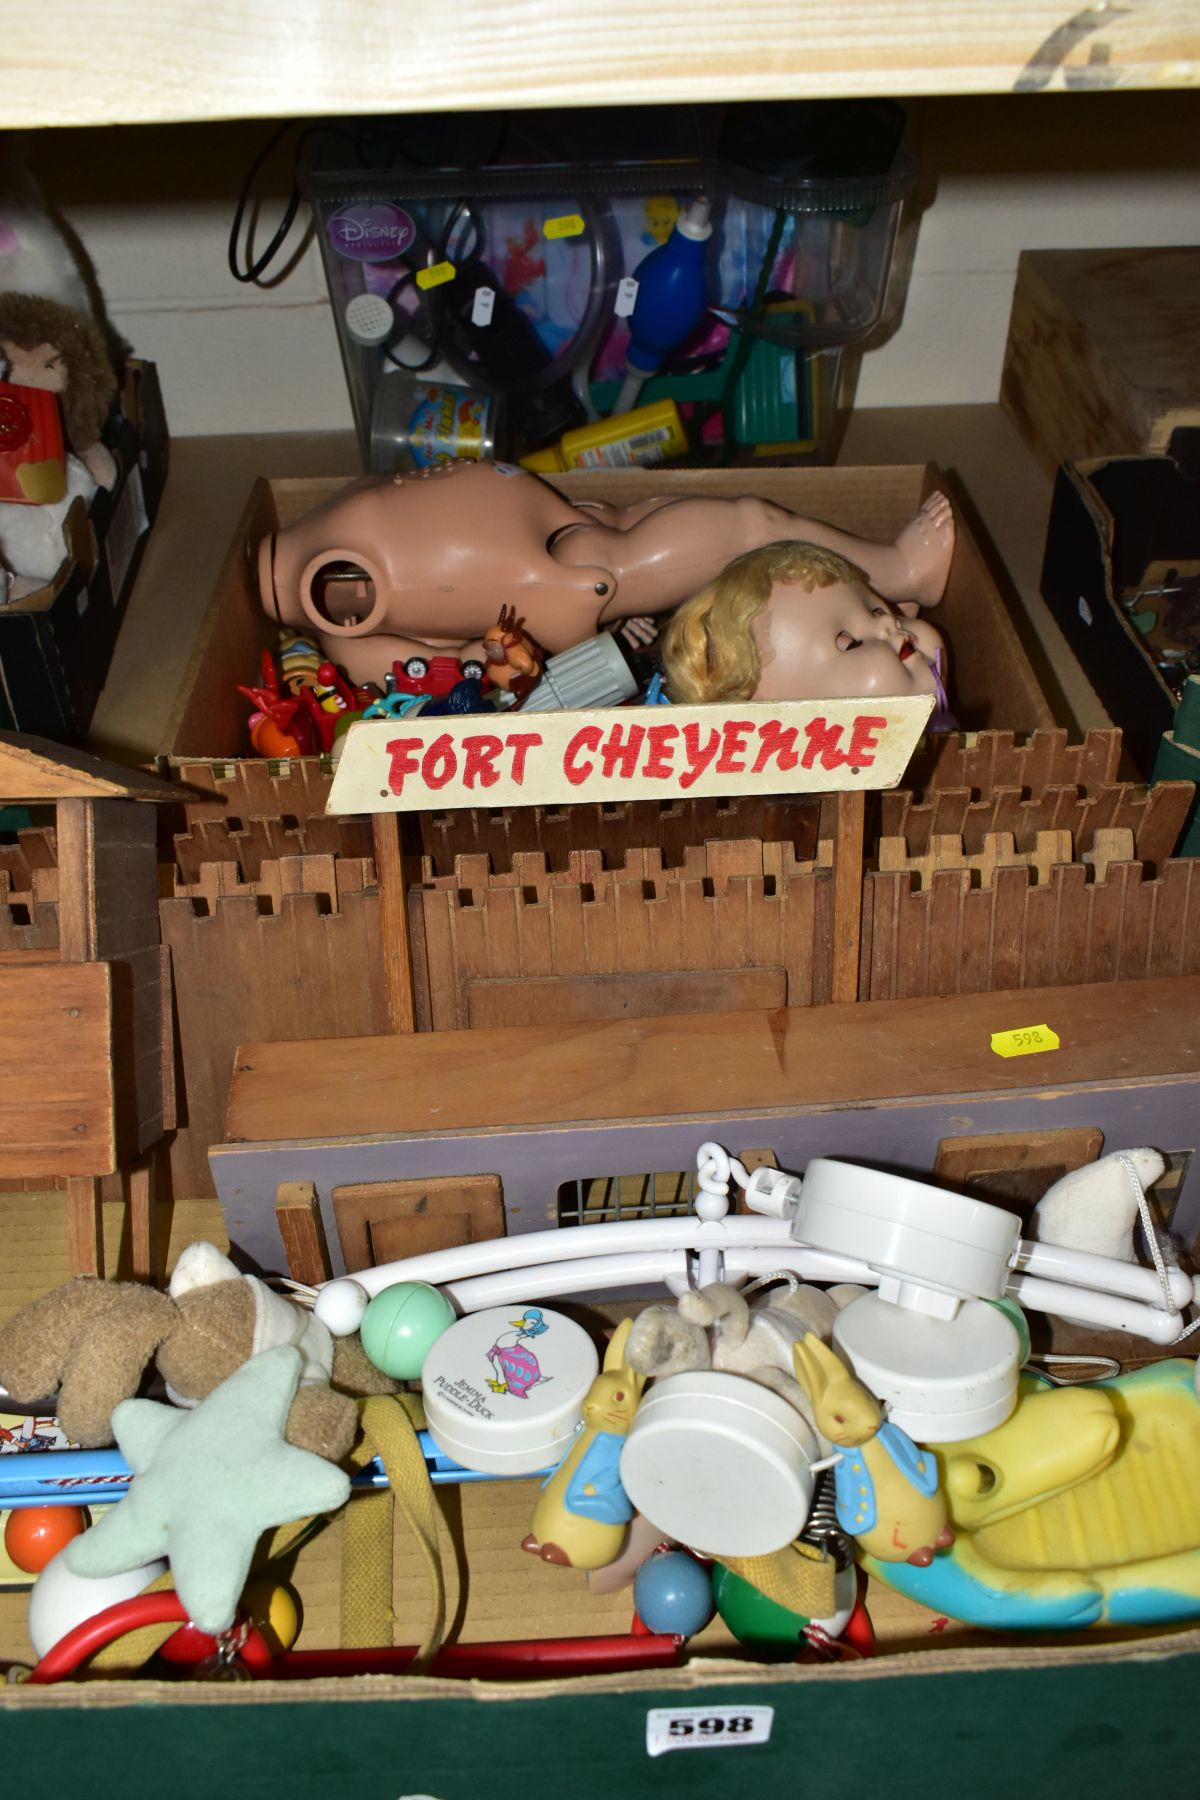 A WOODEN FORT CHEYENNE, playworn condition but appears largely complete, a B.N.D. plastic doll, with